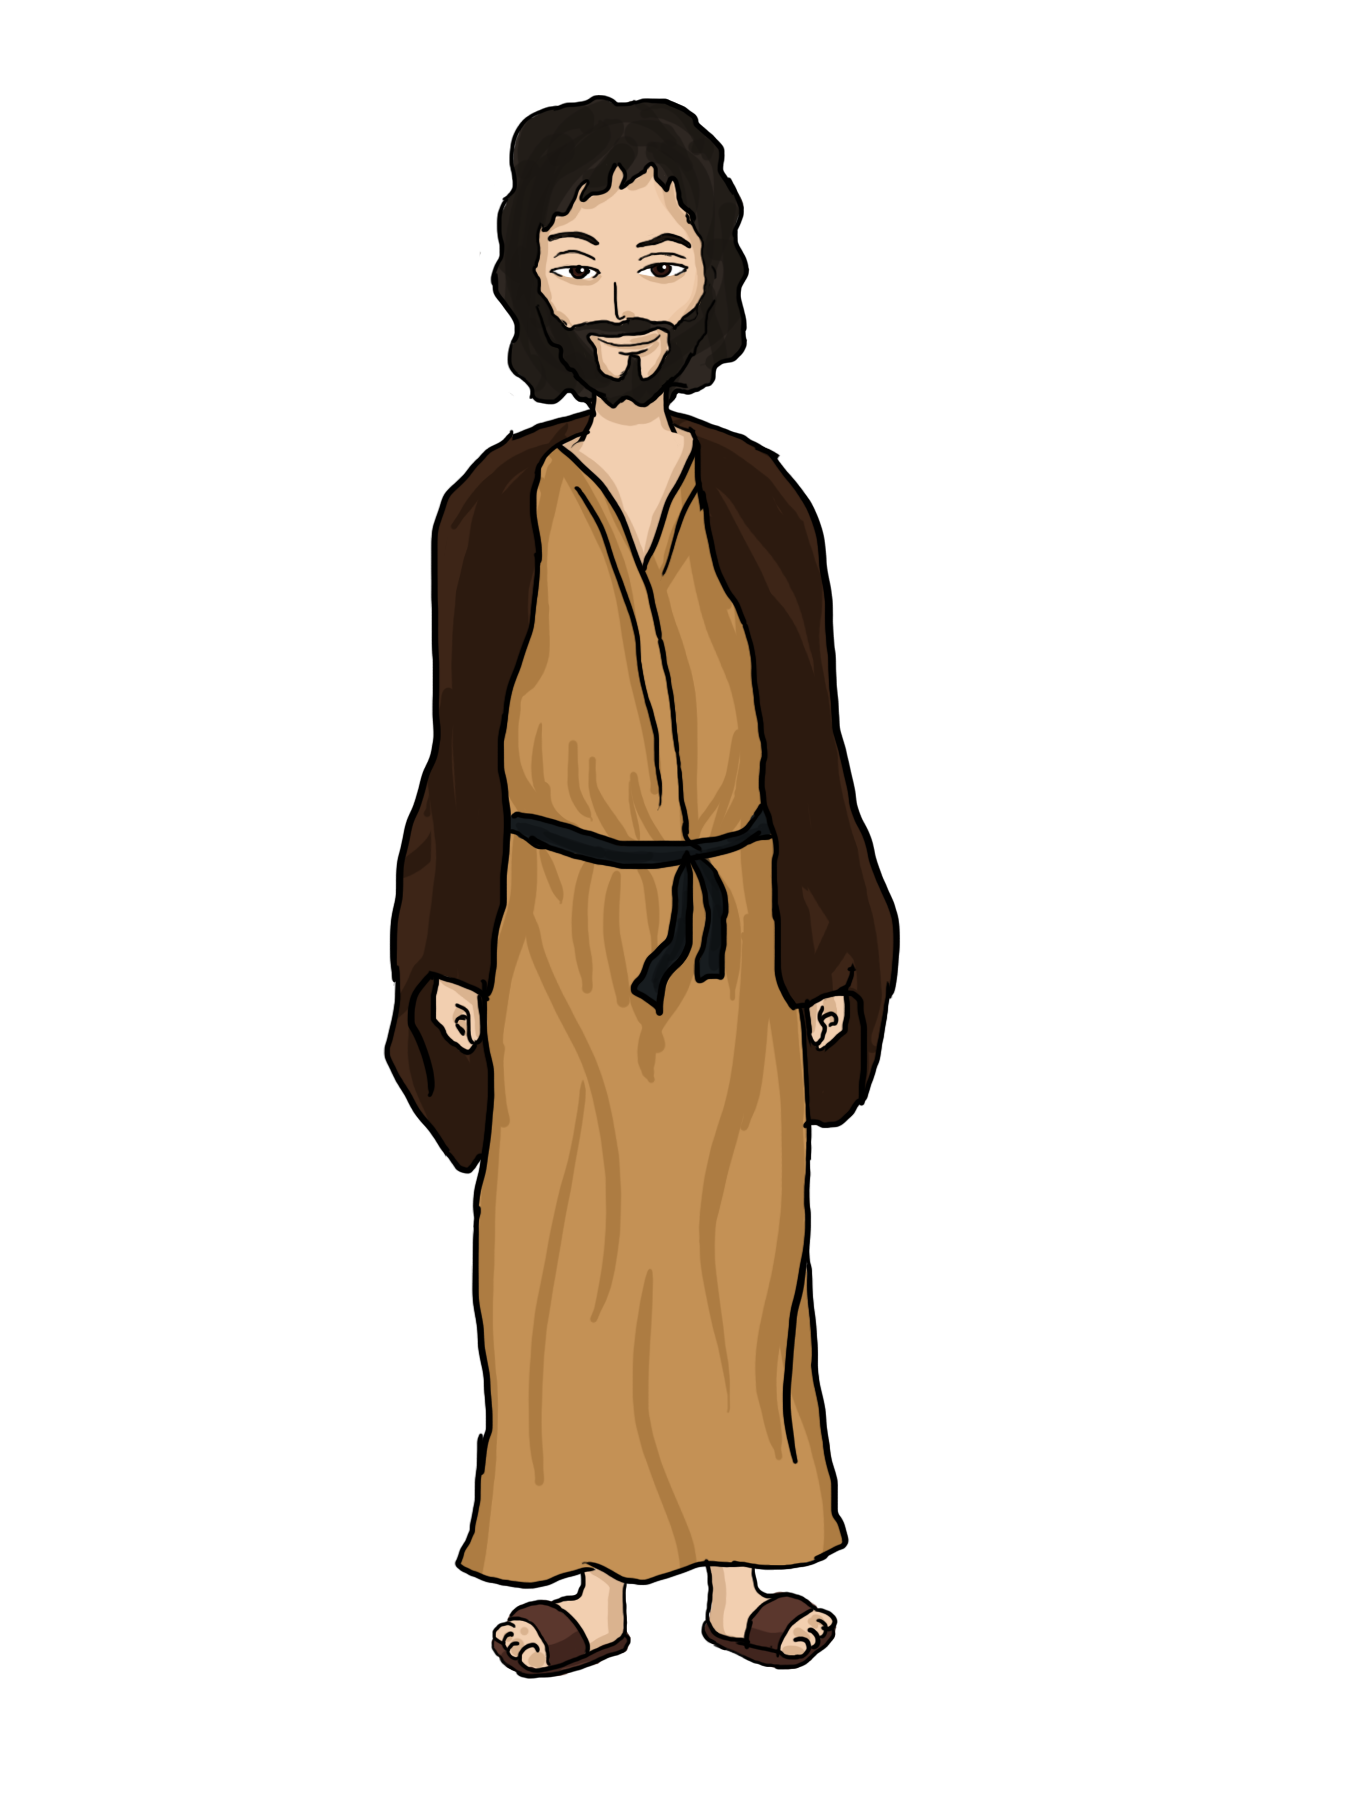 Clipart for christian character clipart transparent library bible people clipart - Google Search | CLIP ART PEOPLE FOR ANIMATED ... clipart transparent library